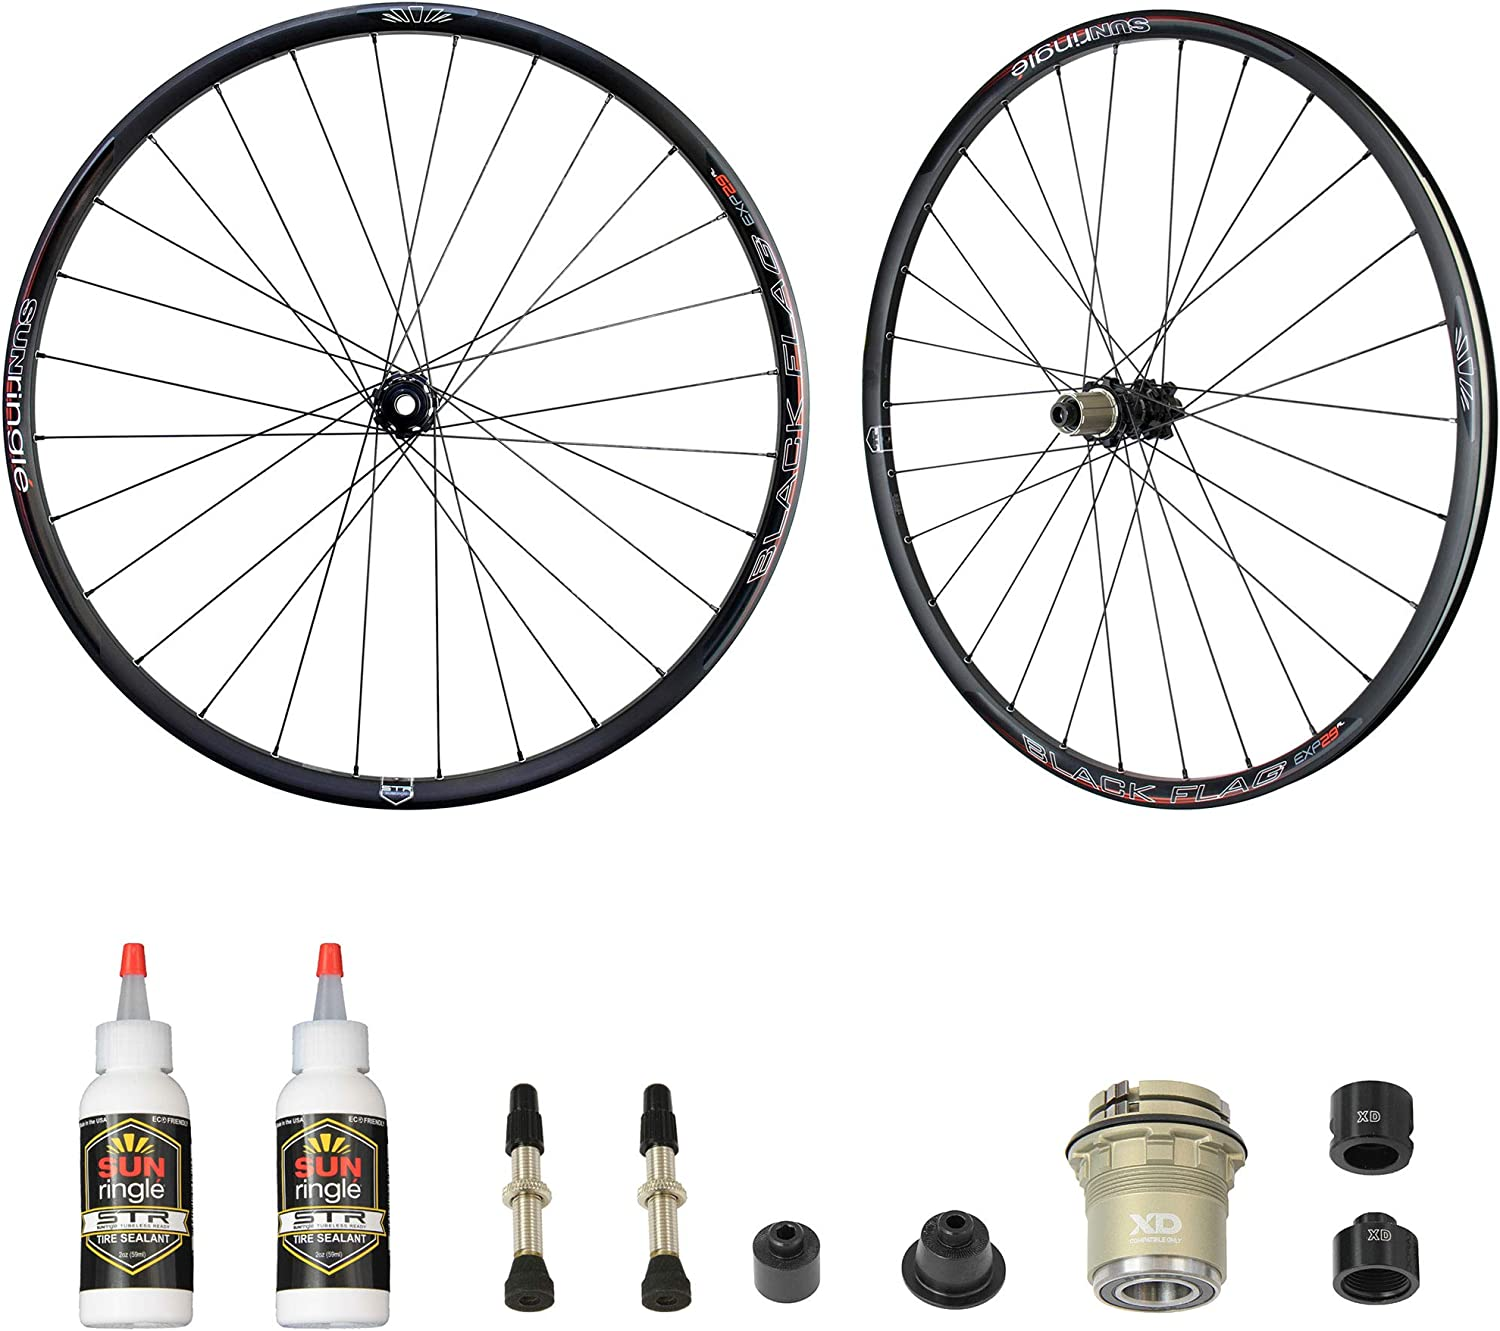 Sun Ringle Black Flag Expert AL Bicycle Tubeless Ready Boost Wheelset 29  15x110mm 12x142mm